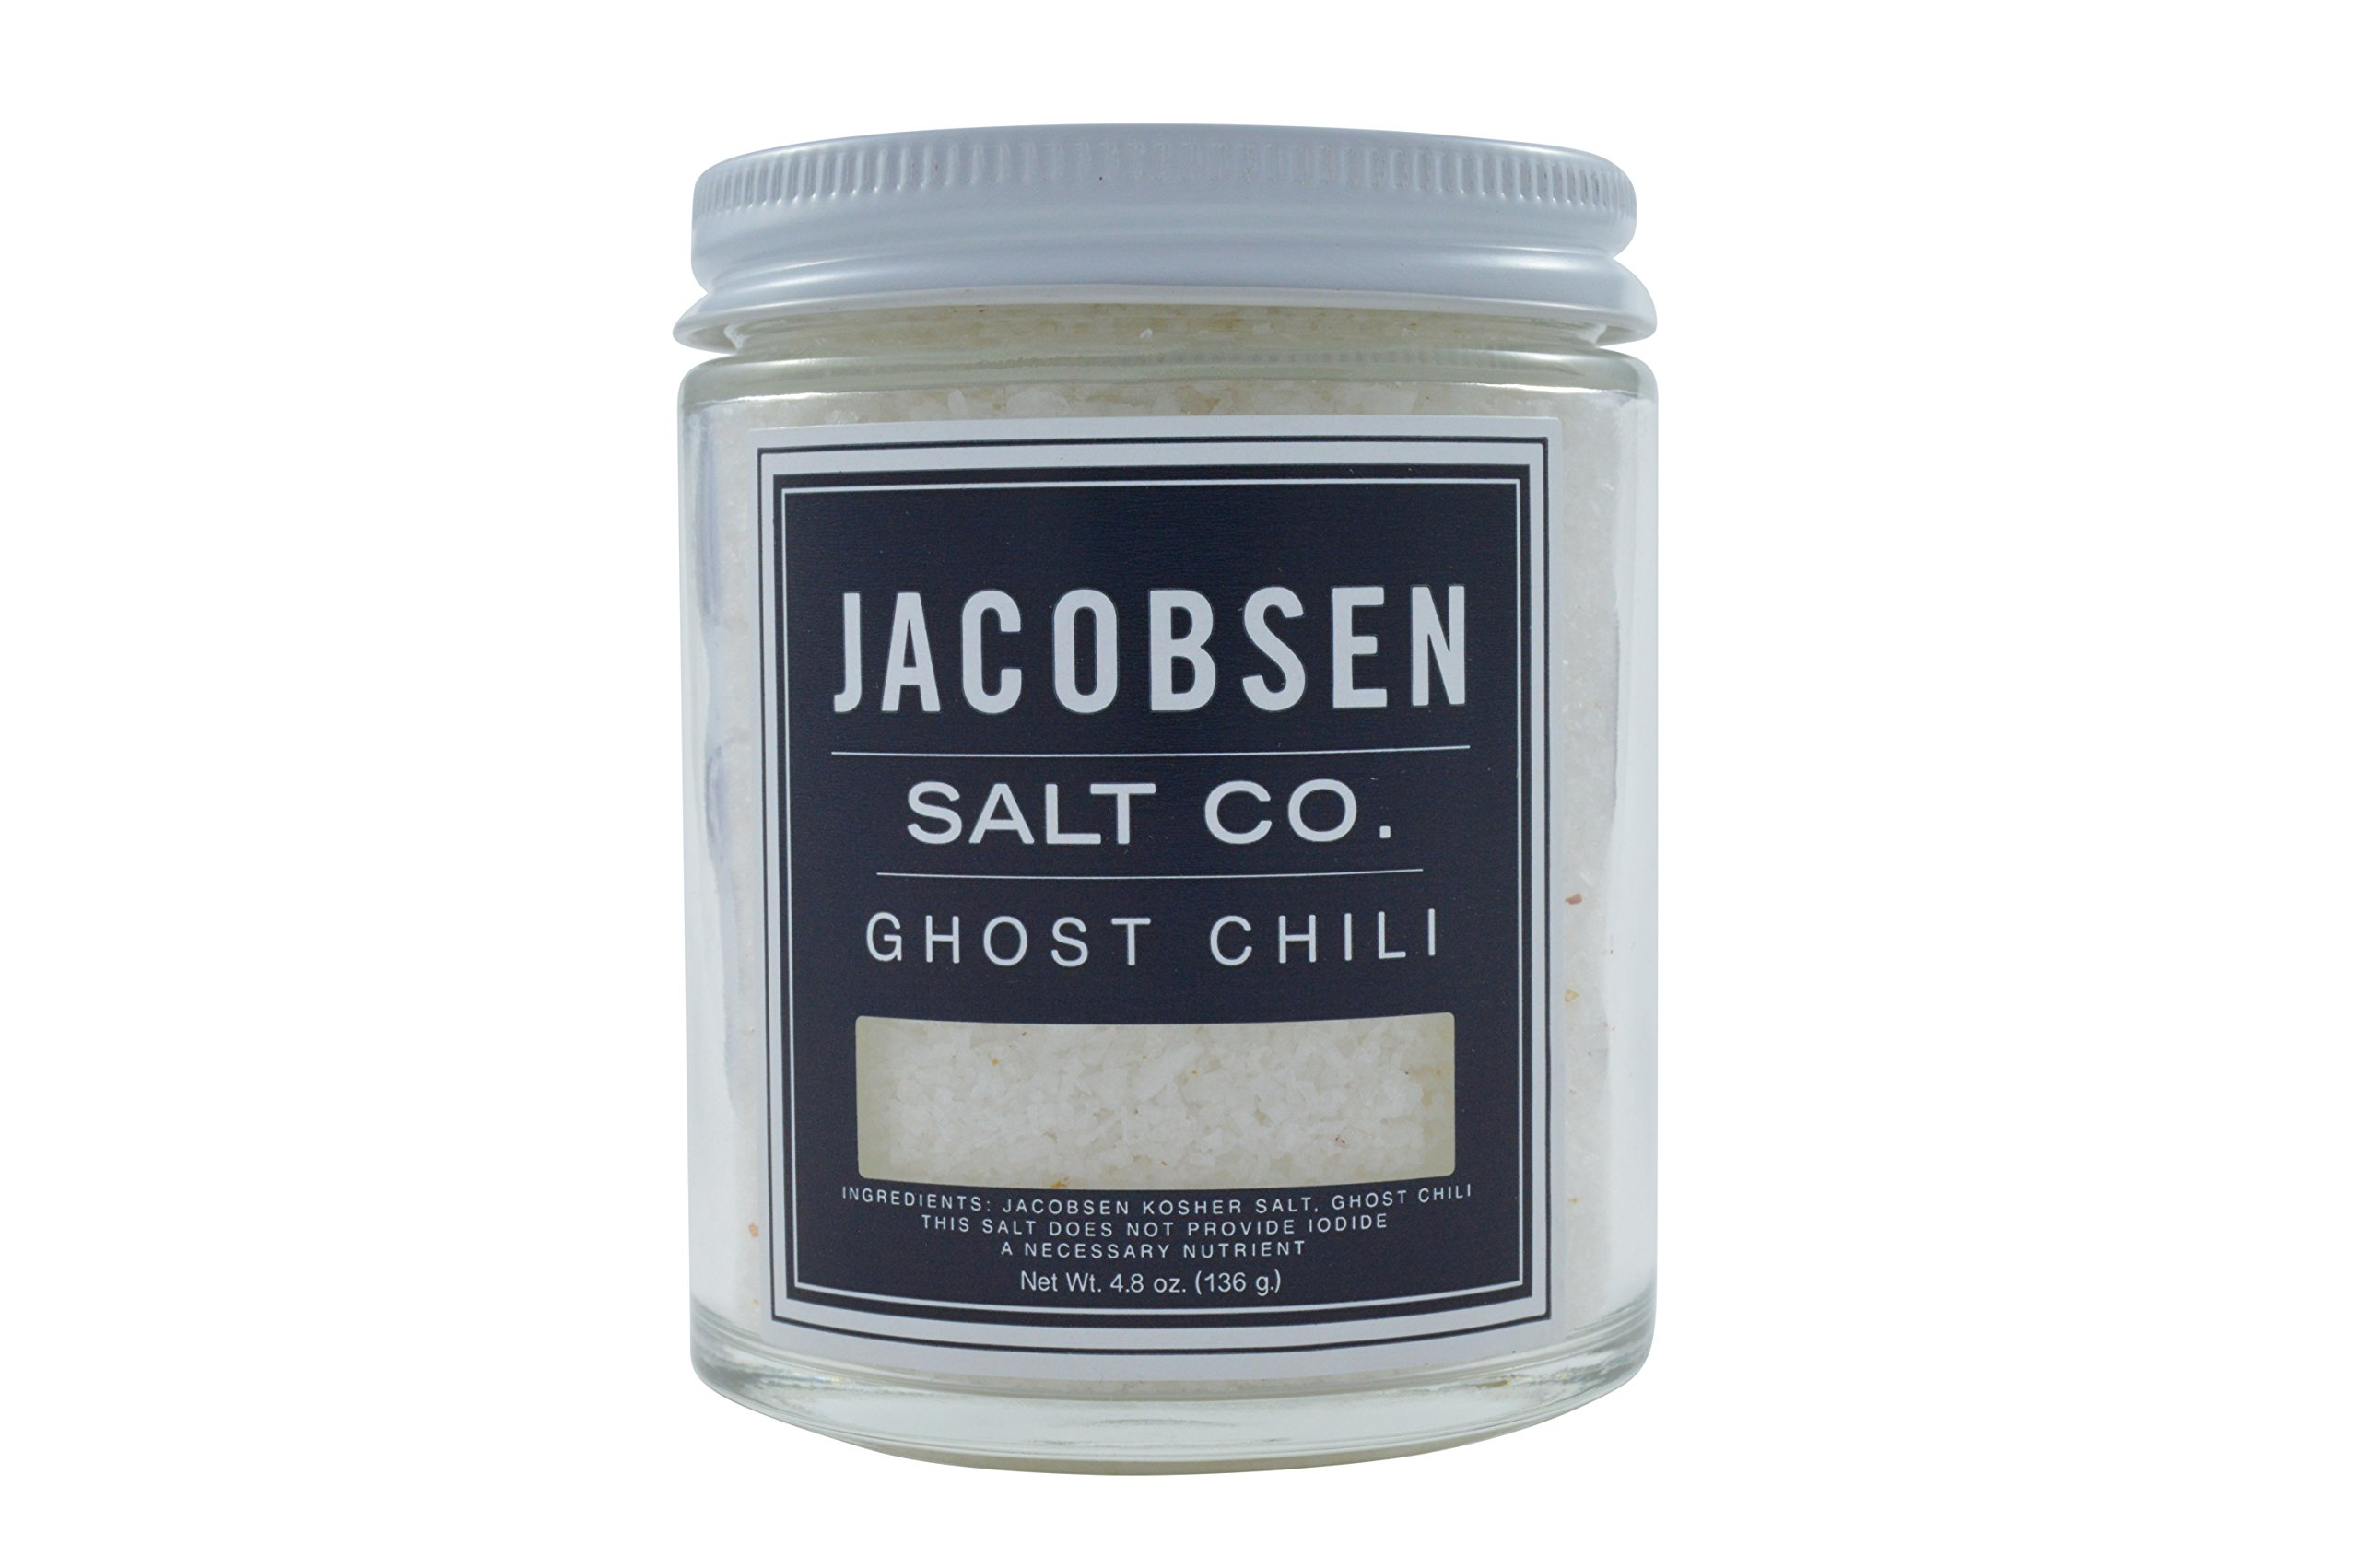 Jacobsen Salt Co, Ghost Chili Flavor, Gourmet Infused Sea Salt, Hand-Harvested in Netarts Bay, OR, Made in the USA, 4.8 Oz (136 g) Jar